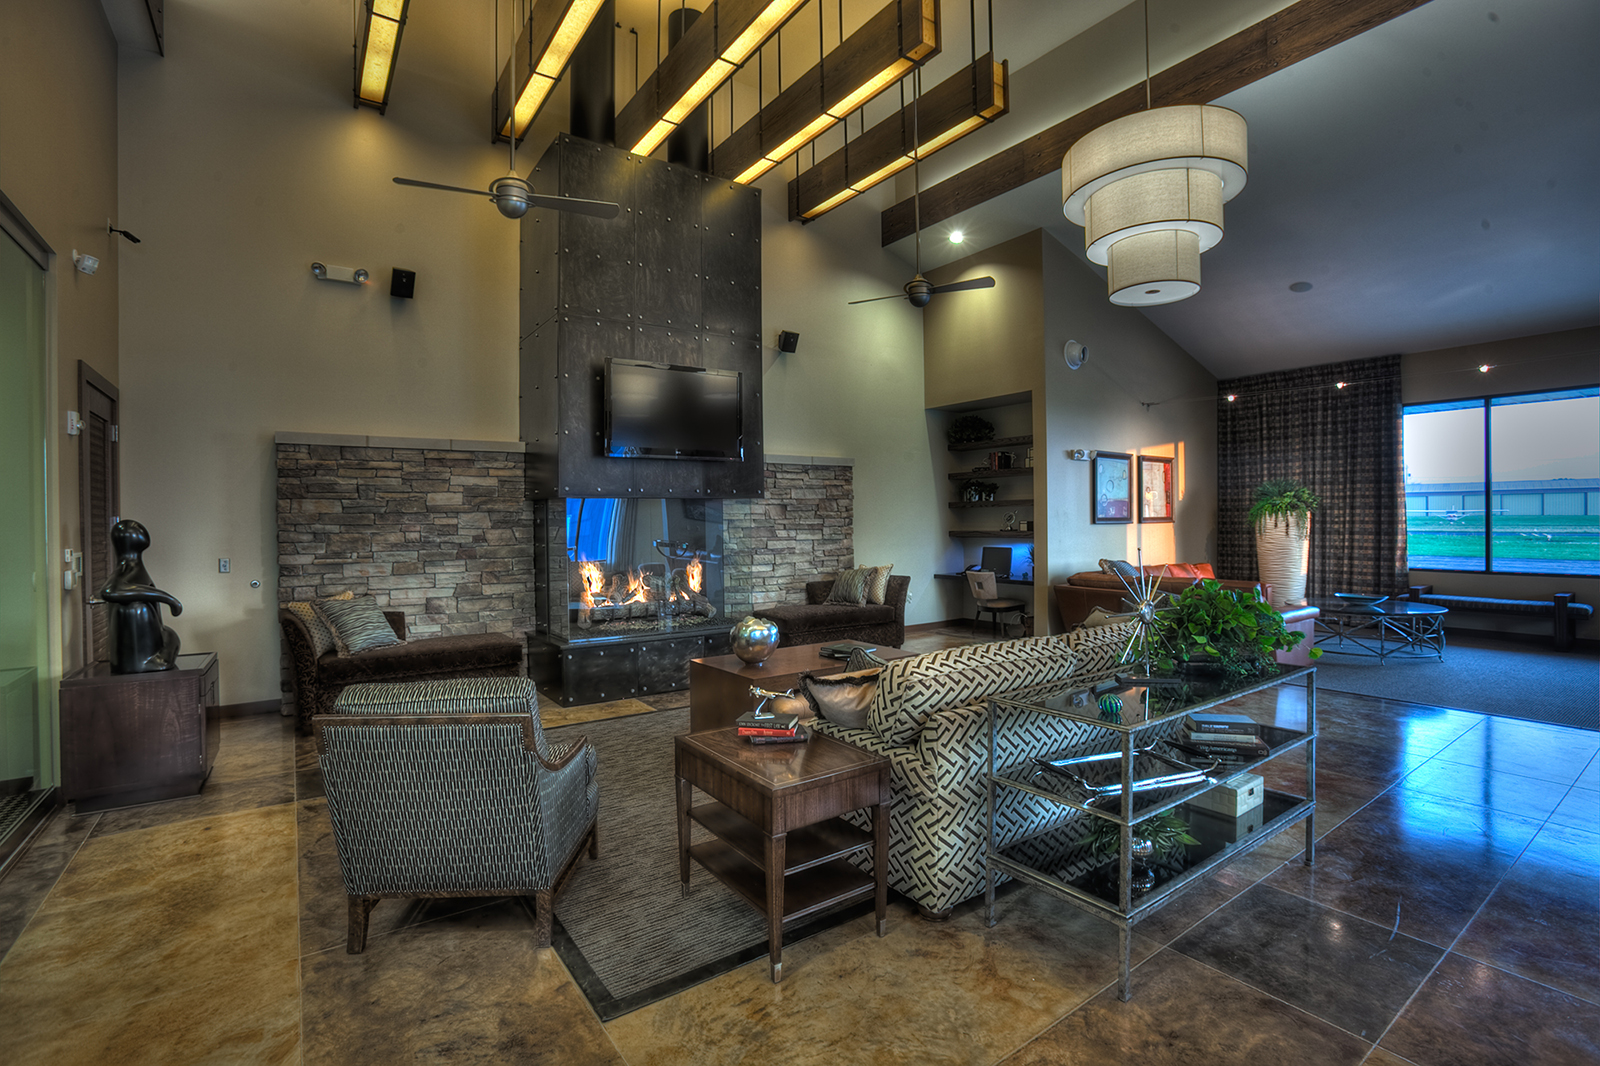 fireplace in a lobby area